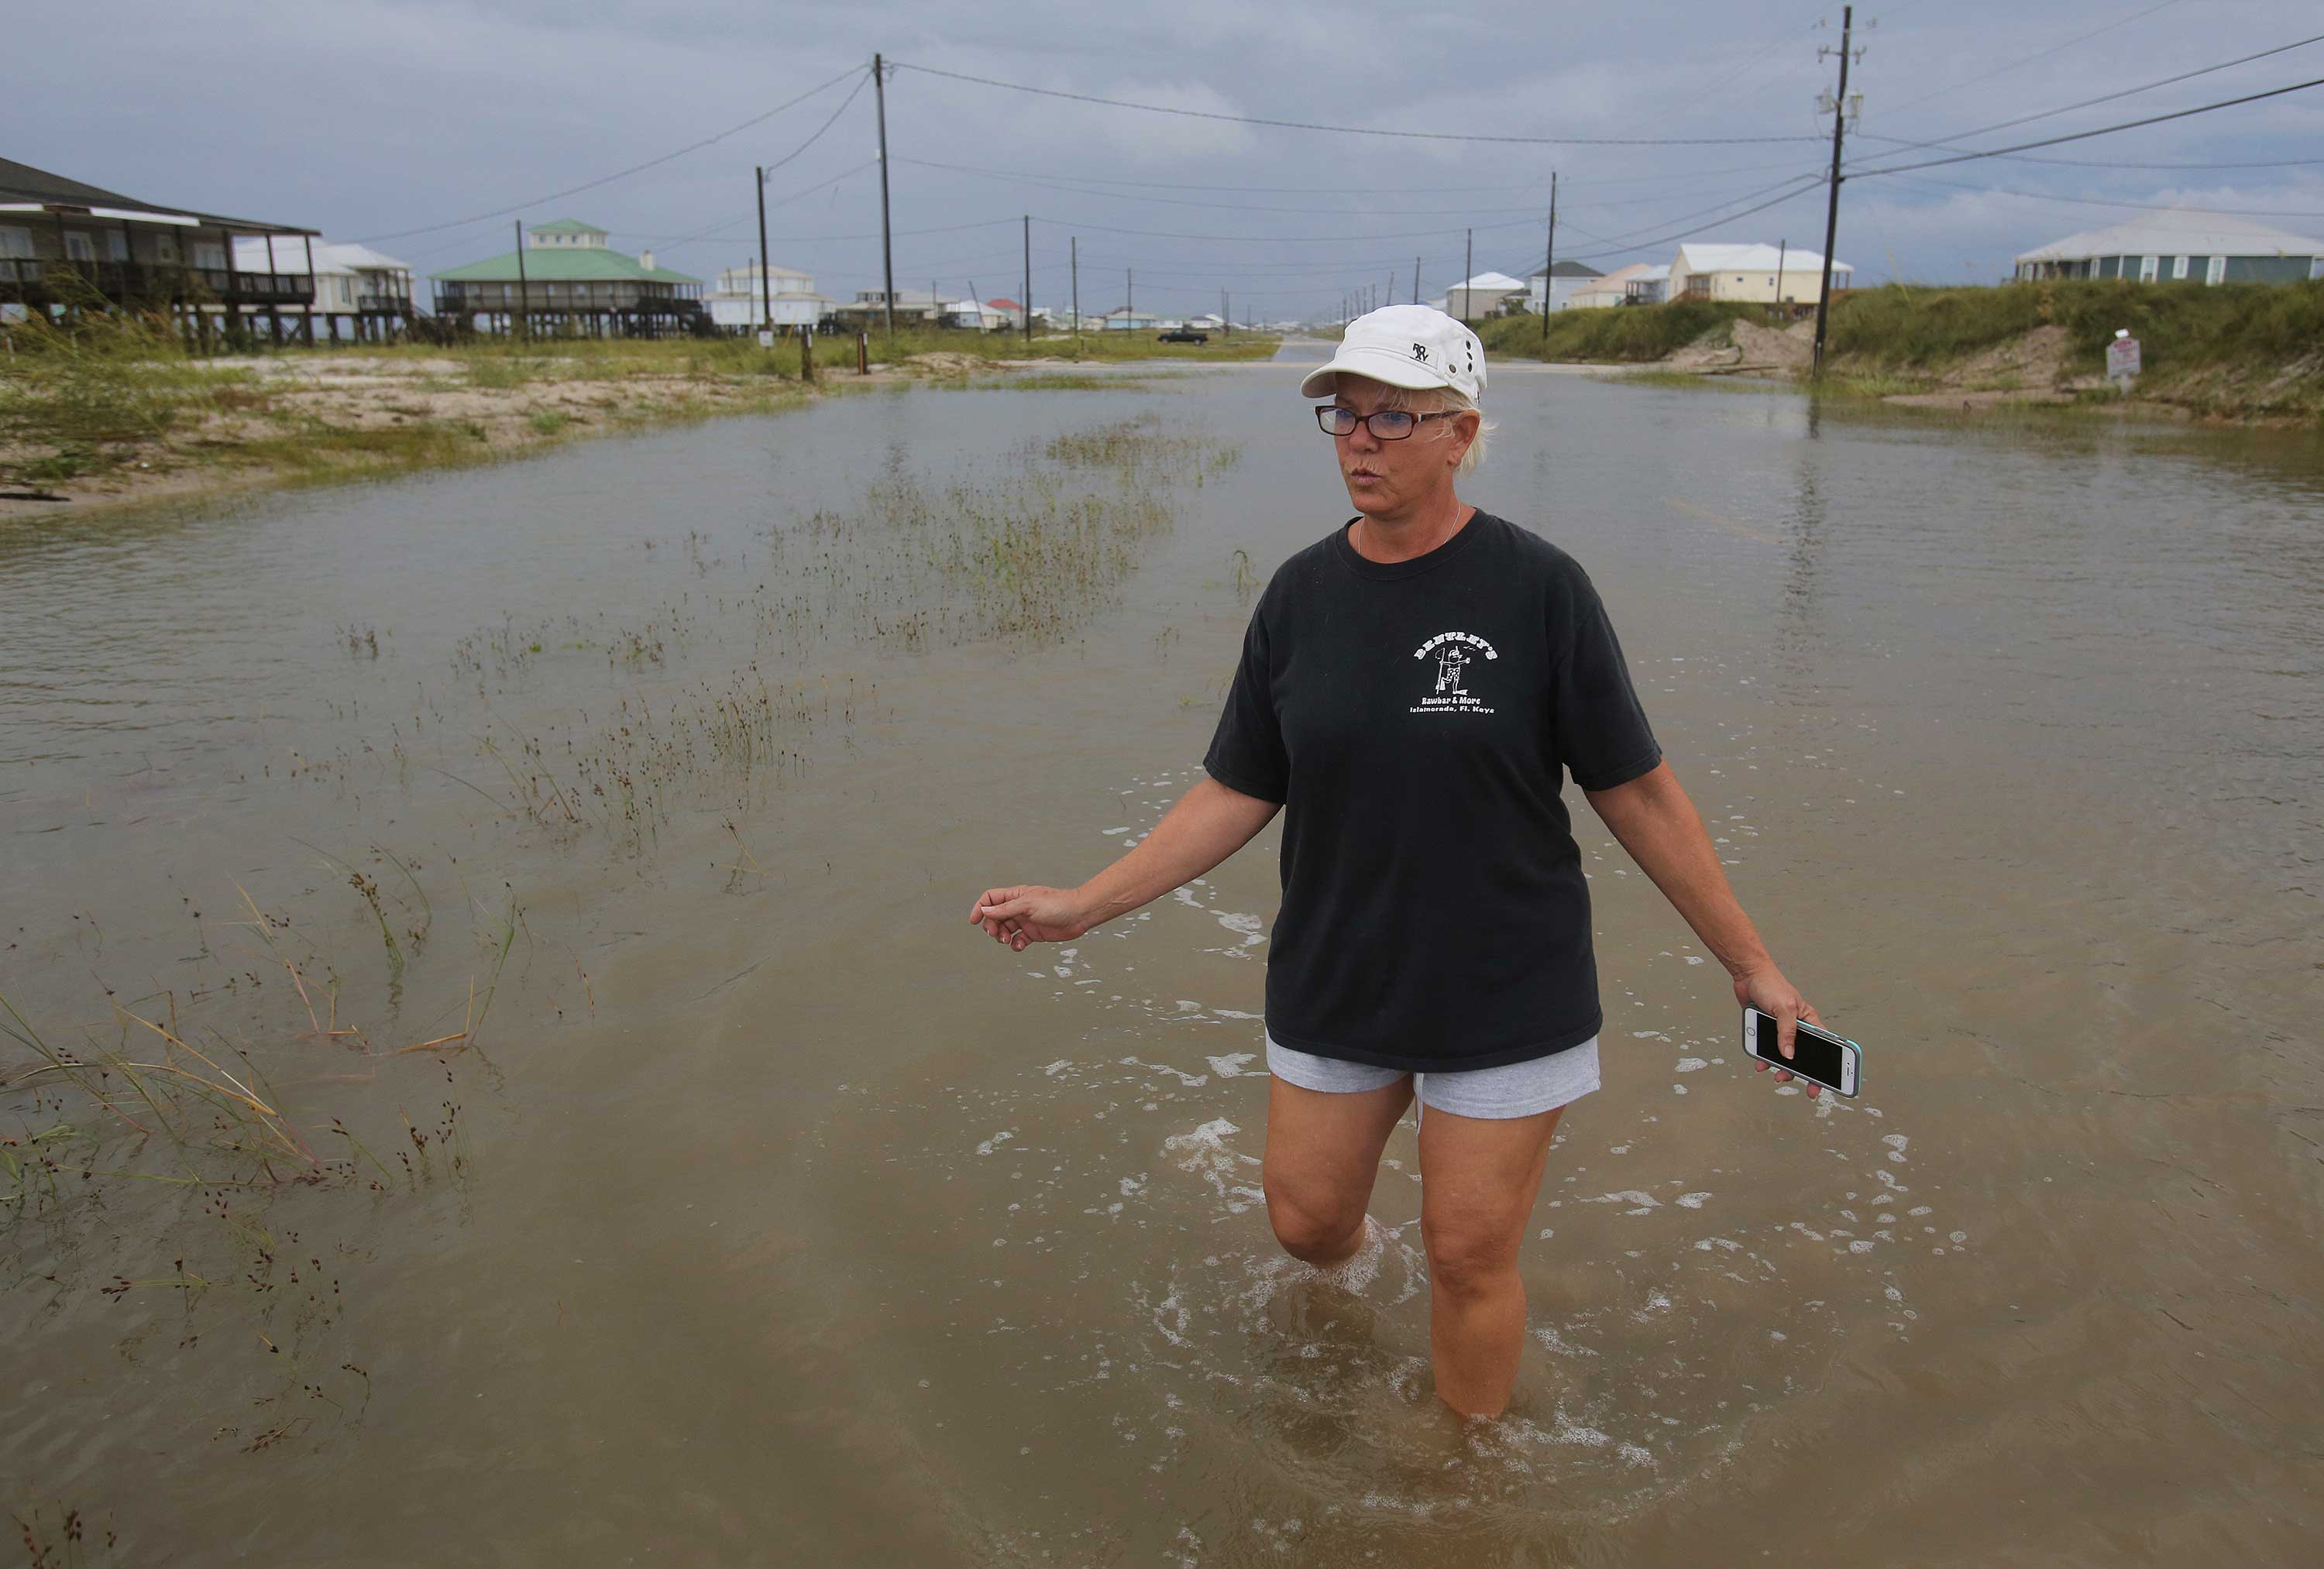 "<div class=""meta image-caption""><div class=""origin-logo origin-image none""><span>none</span></div><span class=""caption-text"">Susan Jones walks through a flooded road from Tropical Storm Gordon, Wednesday, Sept. 5, 2018, in Dauphin Island, Ala. (Dan Anderson/AP Photo)</span></div>"